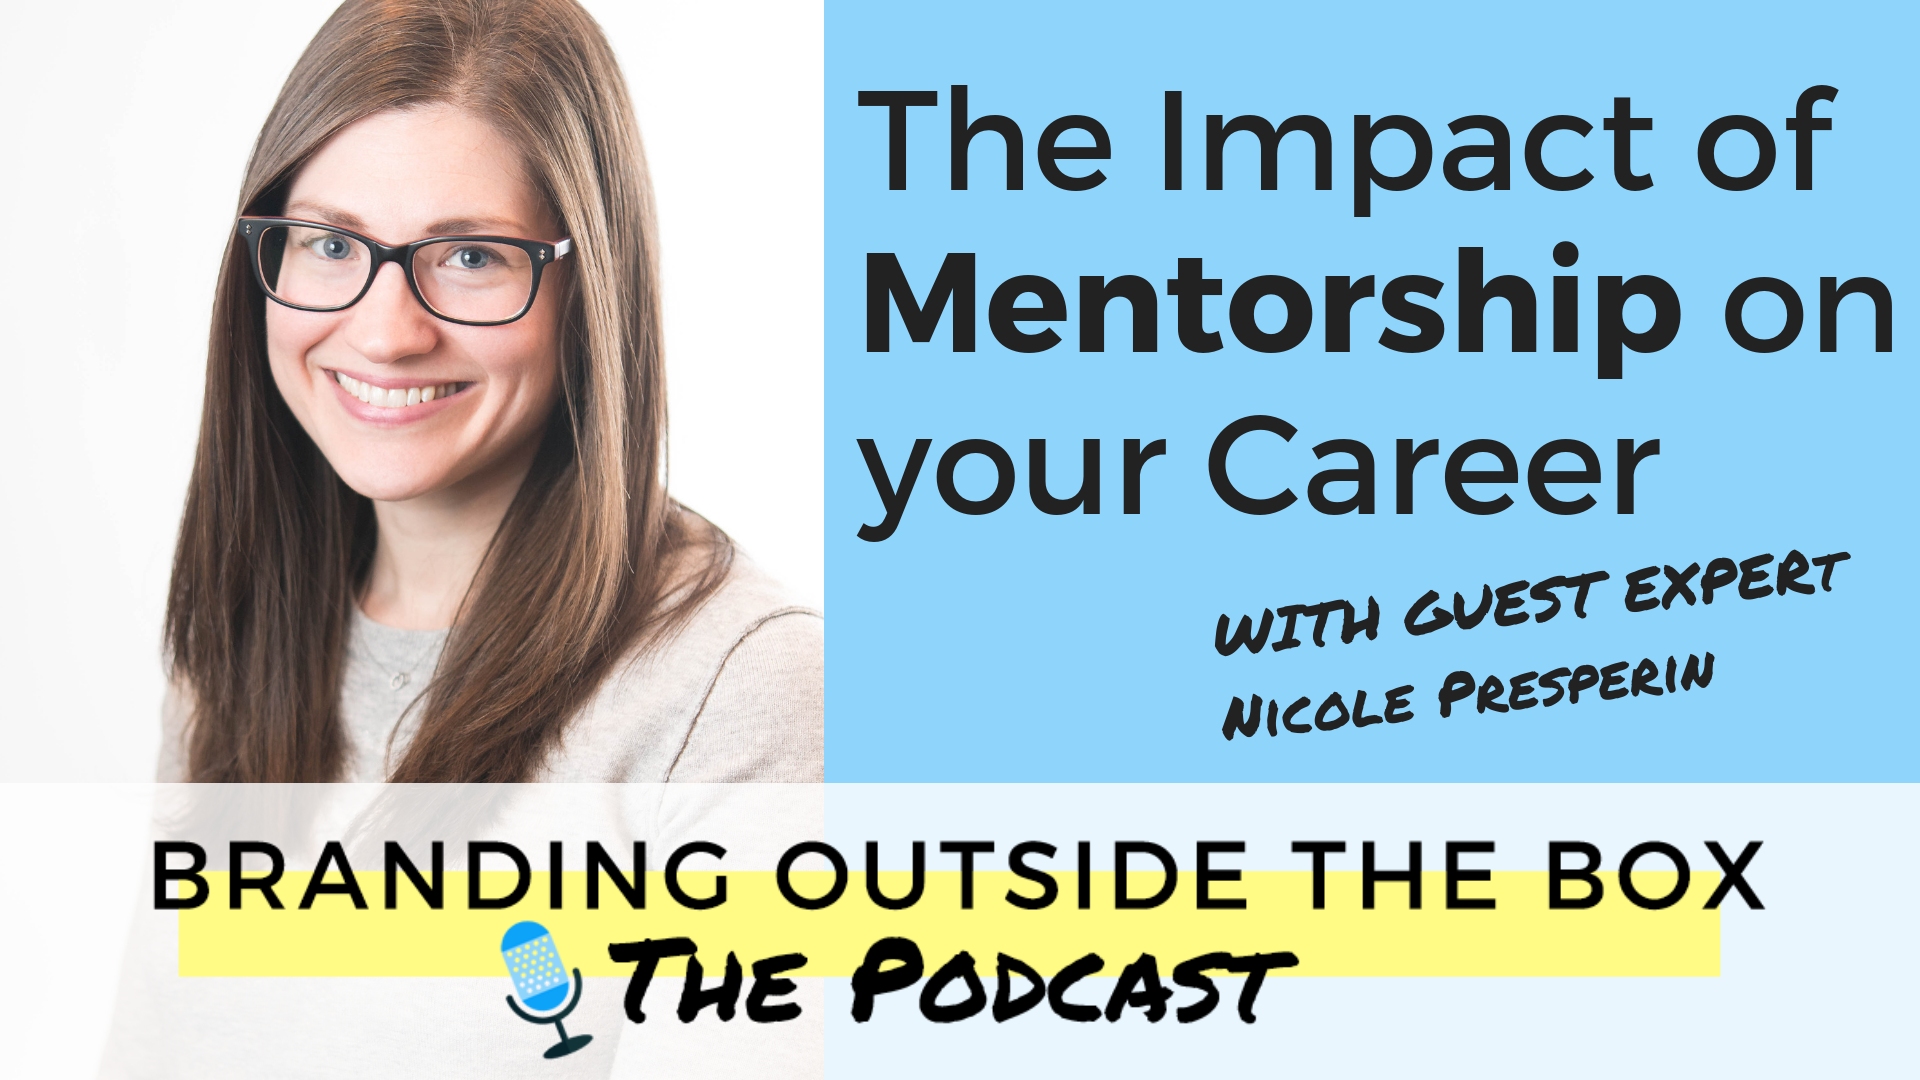 The Impact of Mentorship on your Career with Nicole Presperin